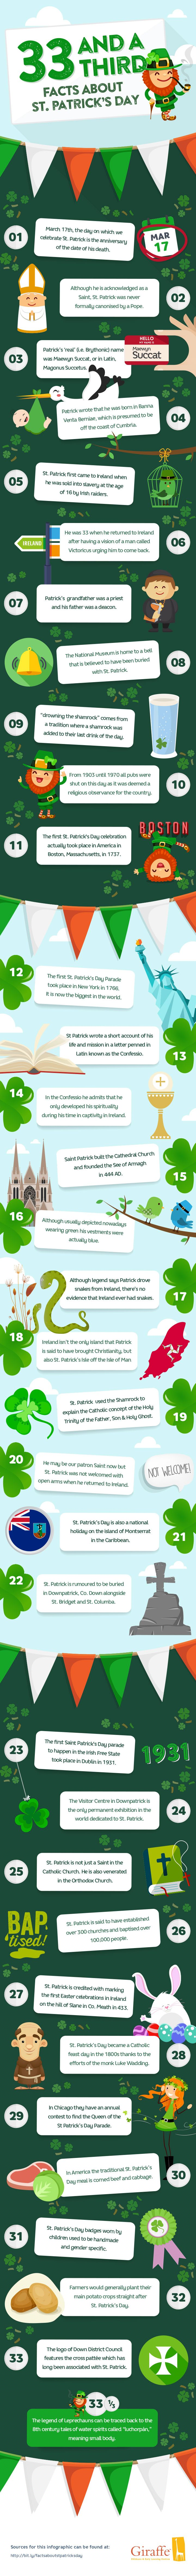 33 and a Third Facts about St Patrick's Day #infographic #StPatricksDay #Travel